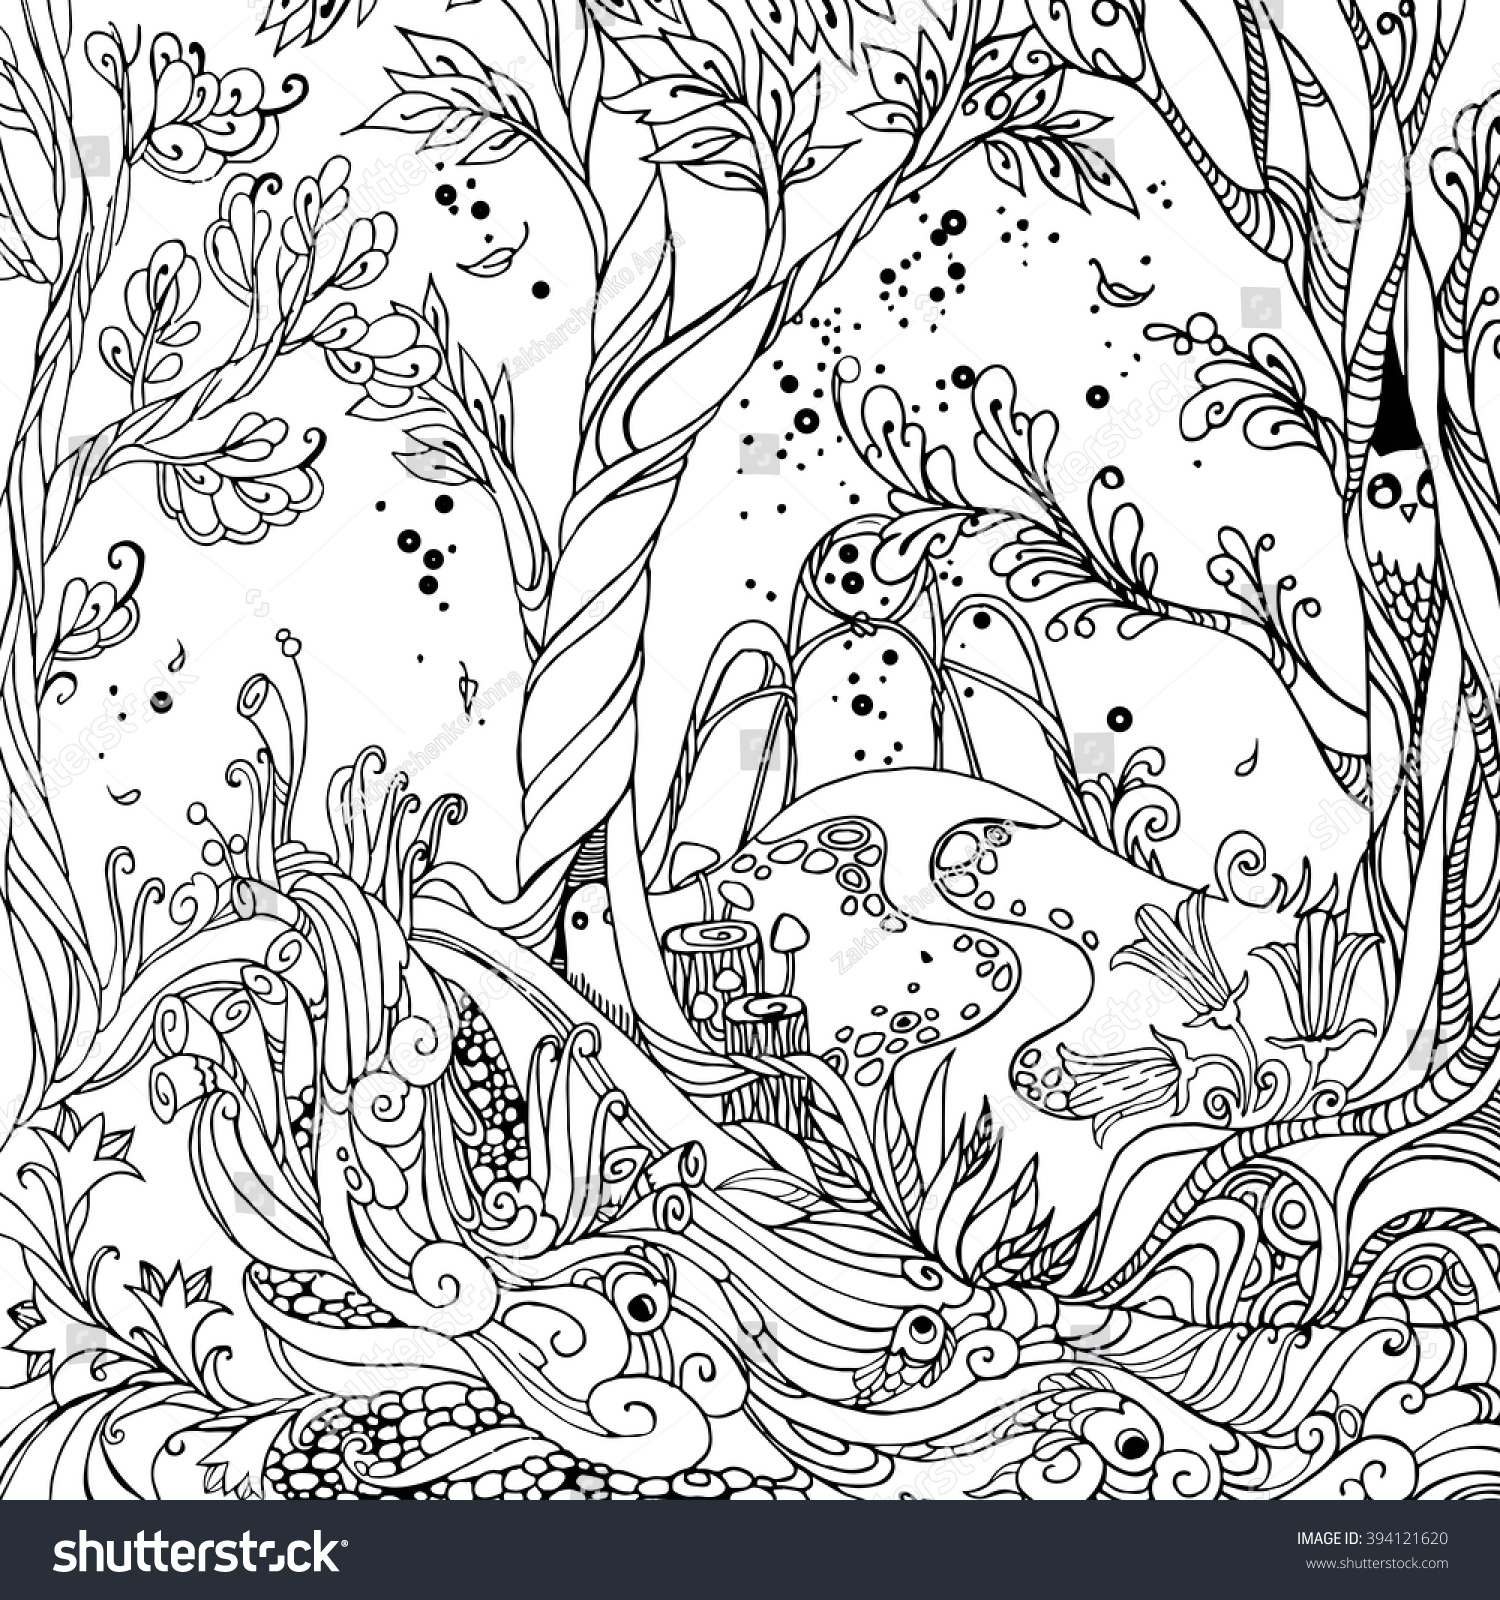 Fairy Forest Adult Coloring Page Vector Stock Vector (Royalty Free ...